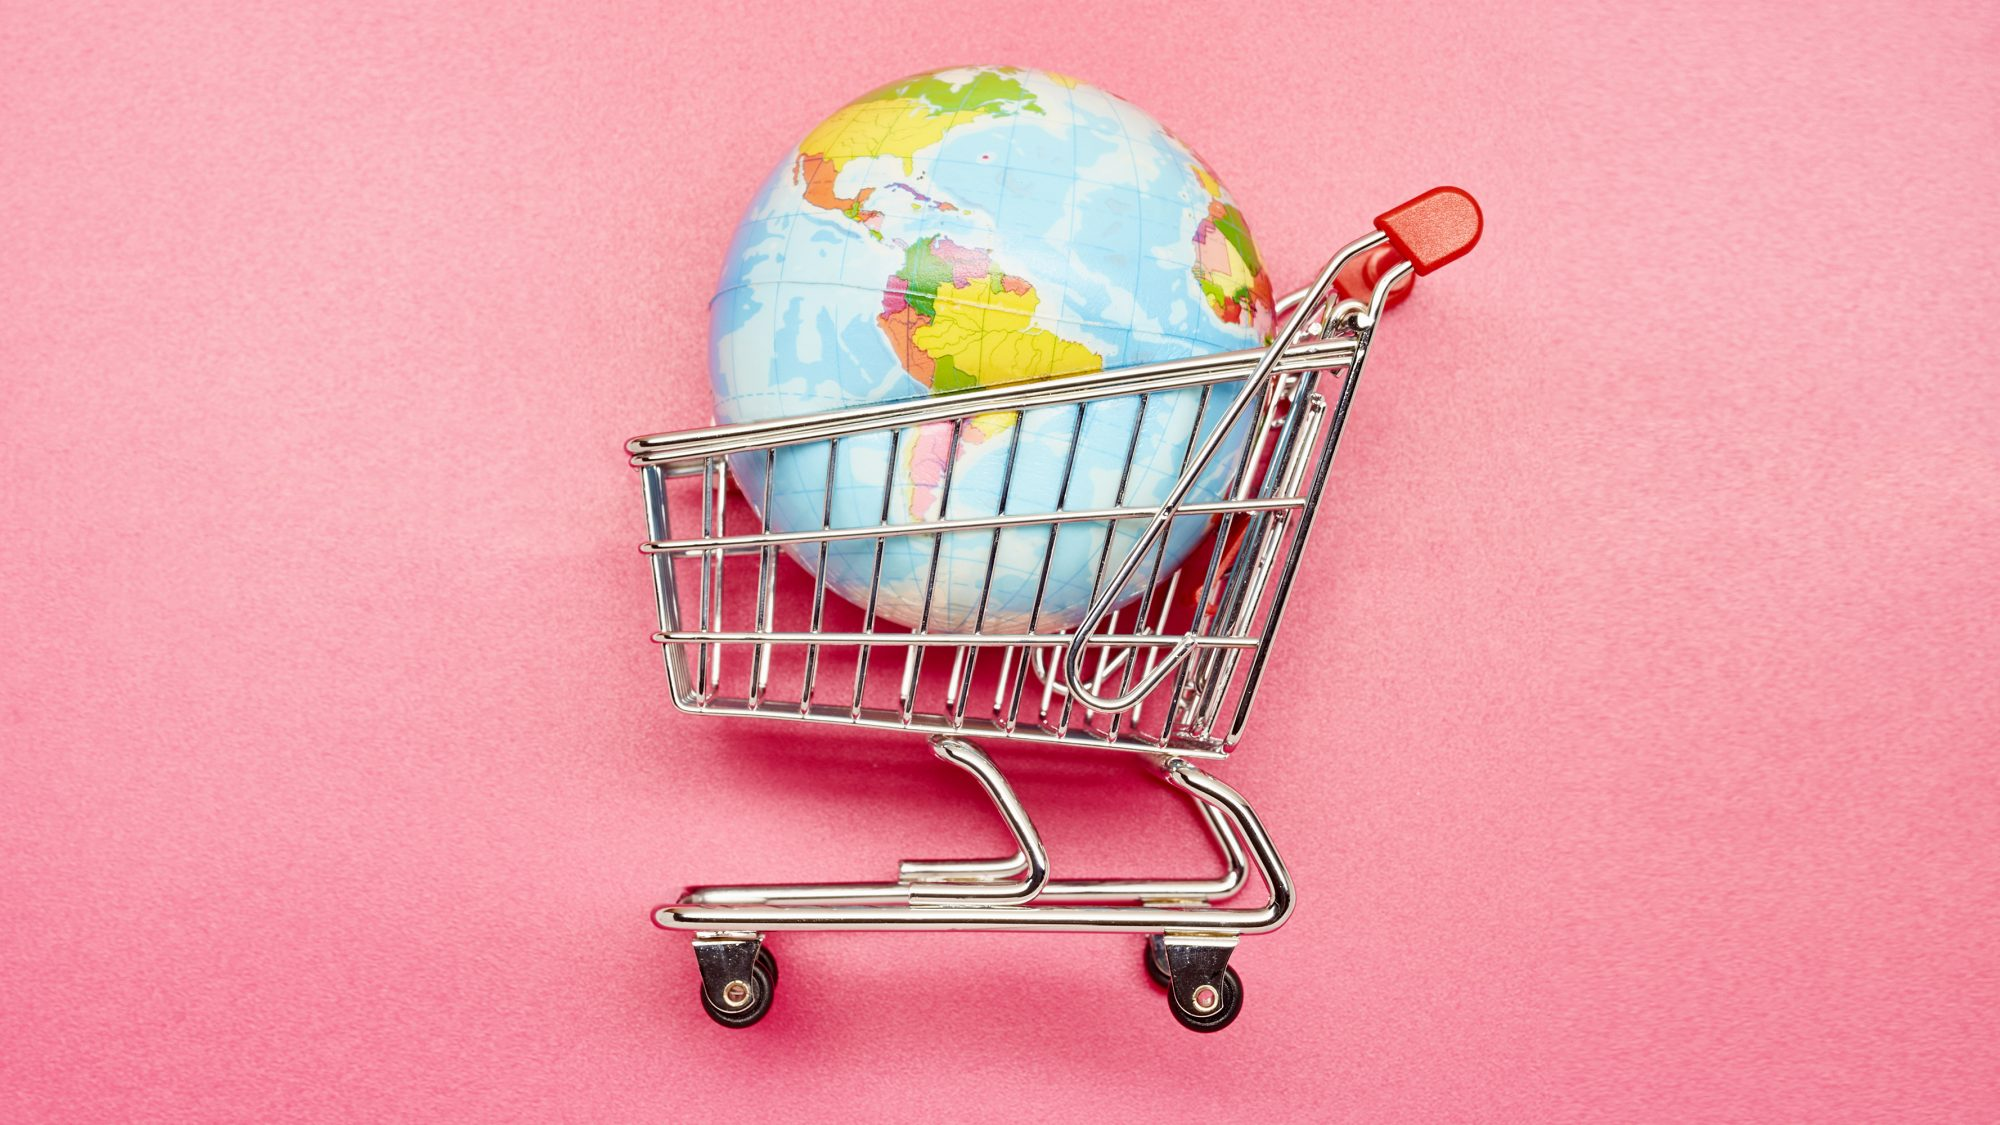 A small shopping cart with planet earth in it